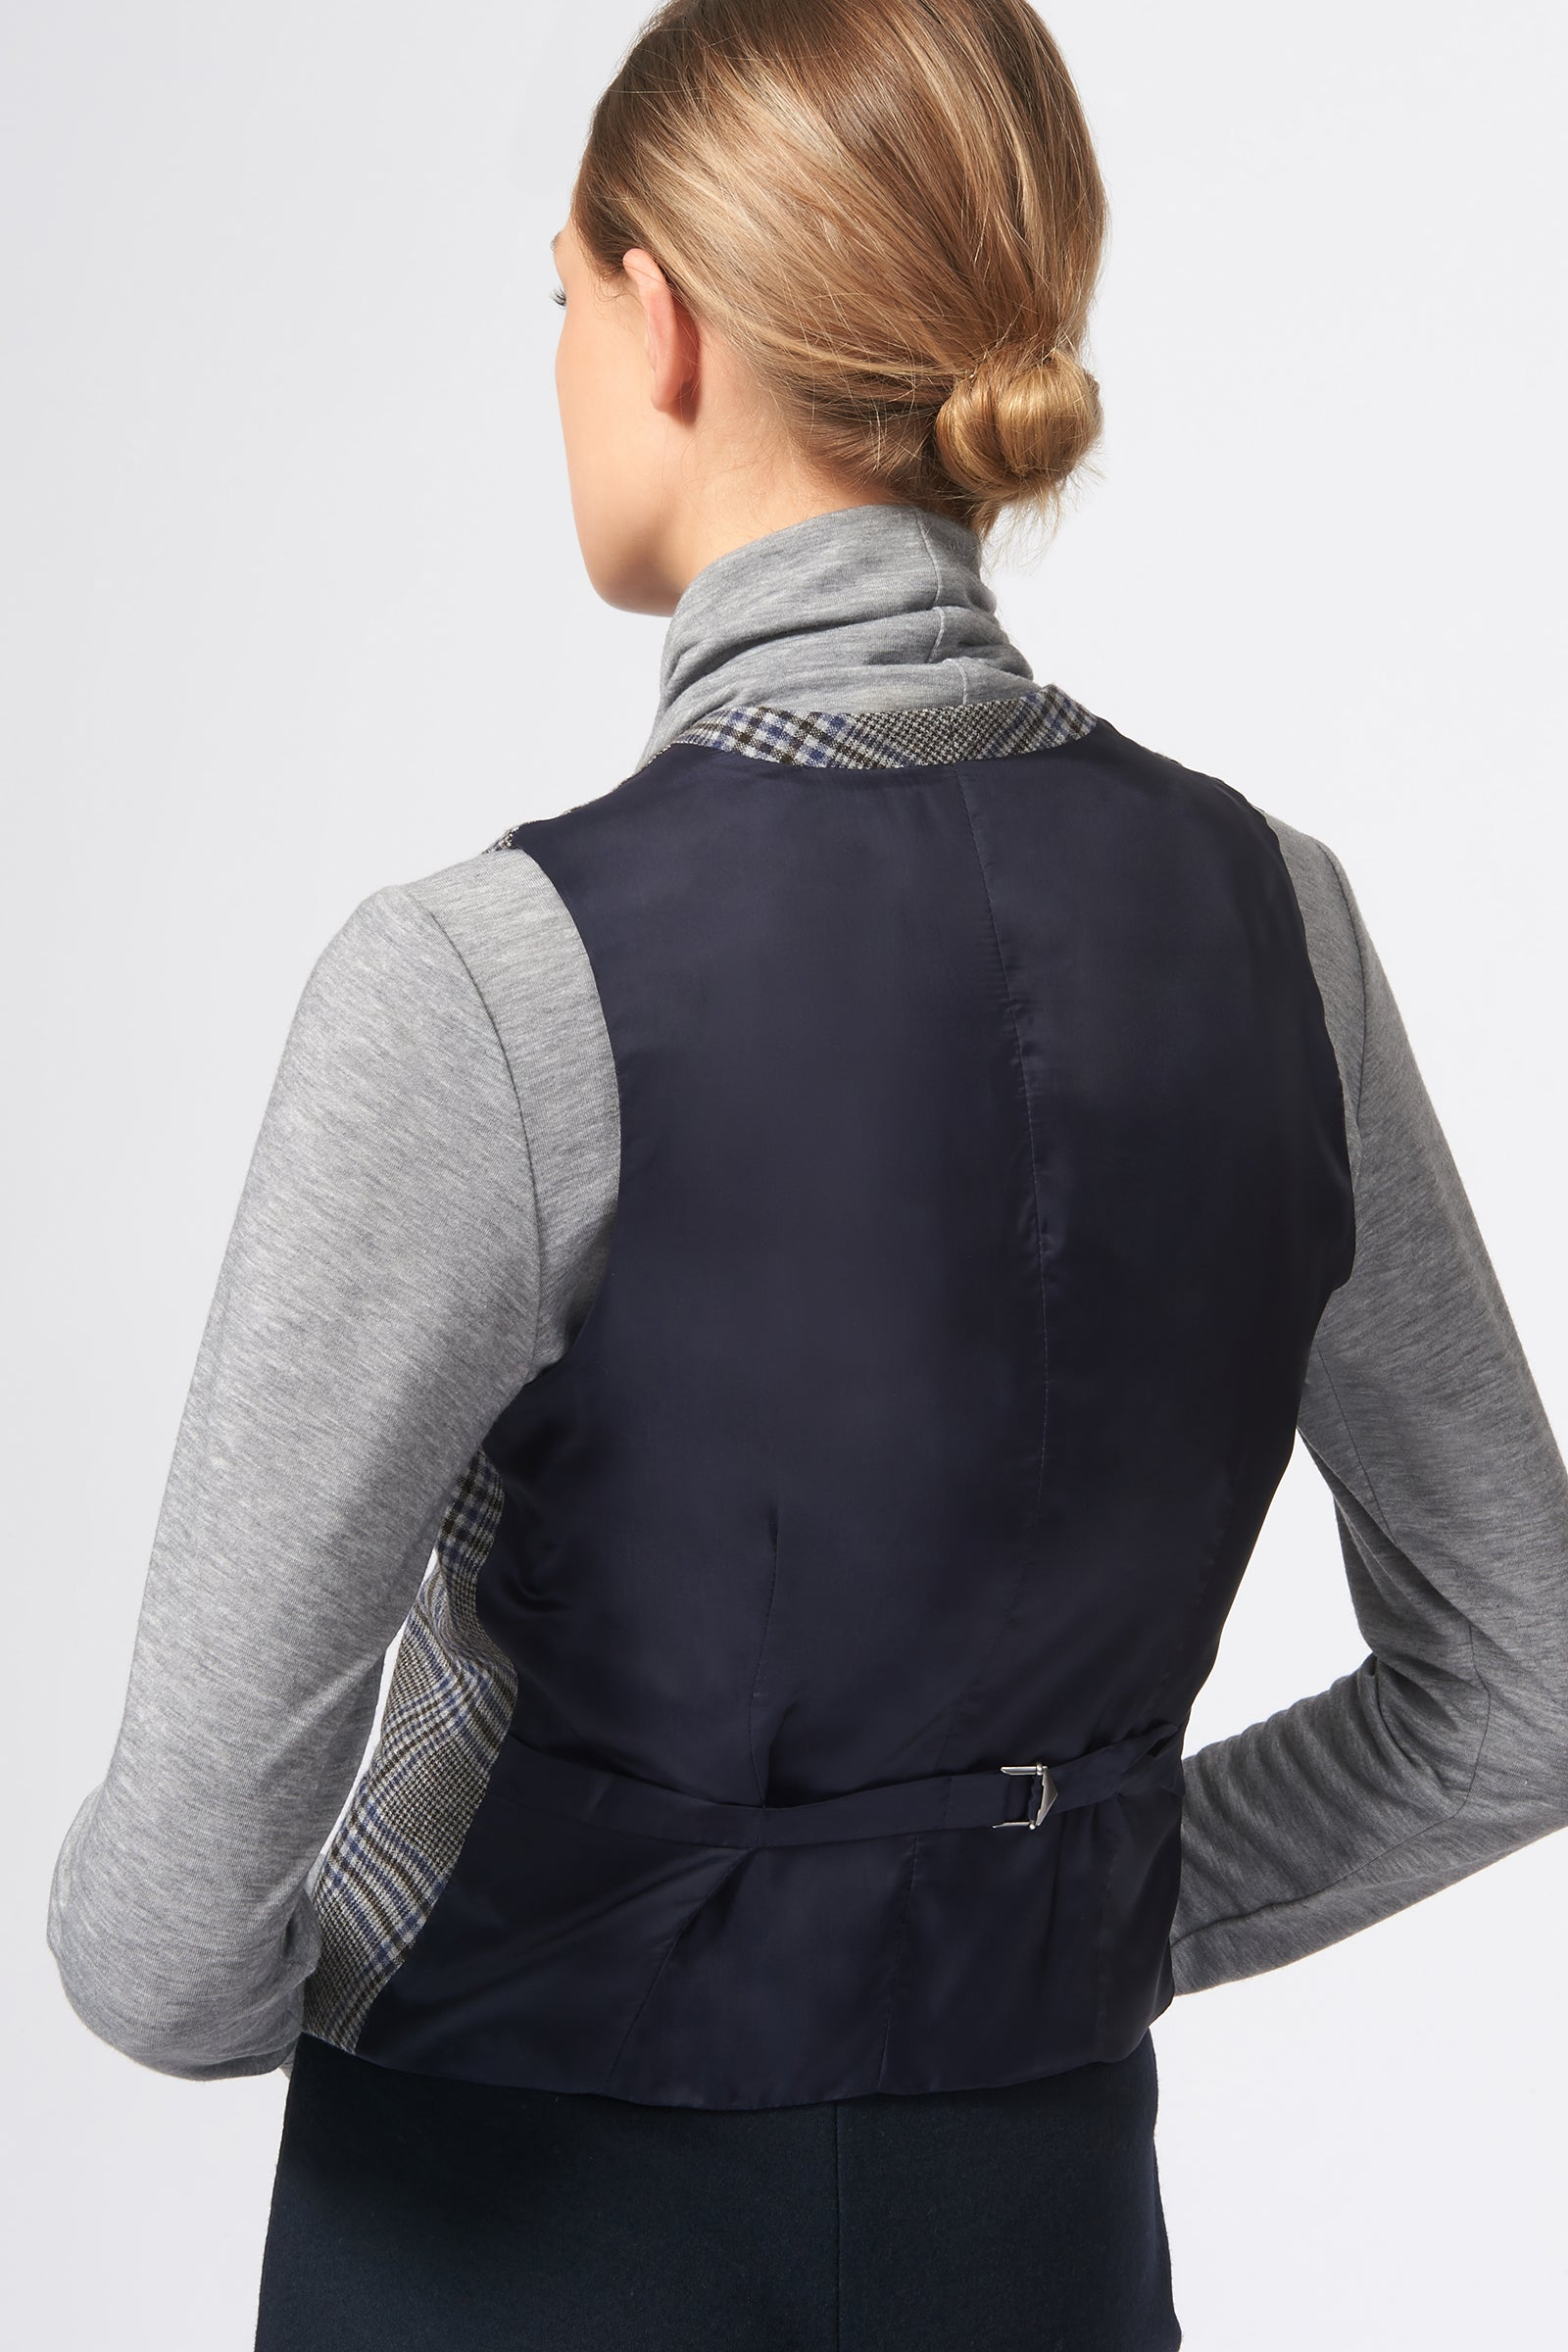 Kal Rieman Classic Tailored Vest in Grey Plaid on Model Back View